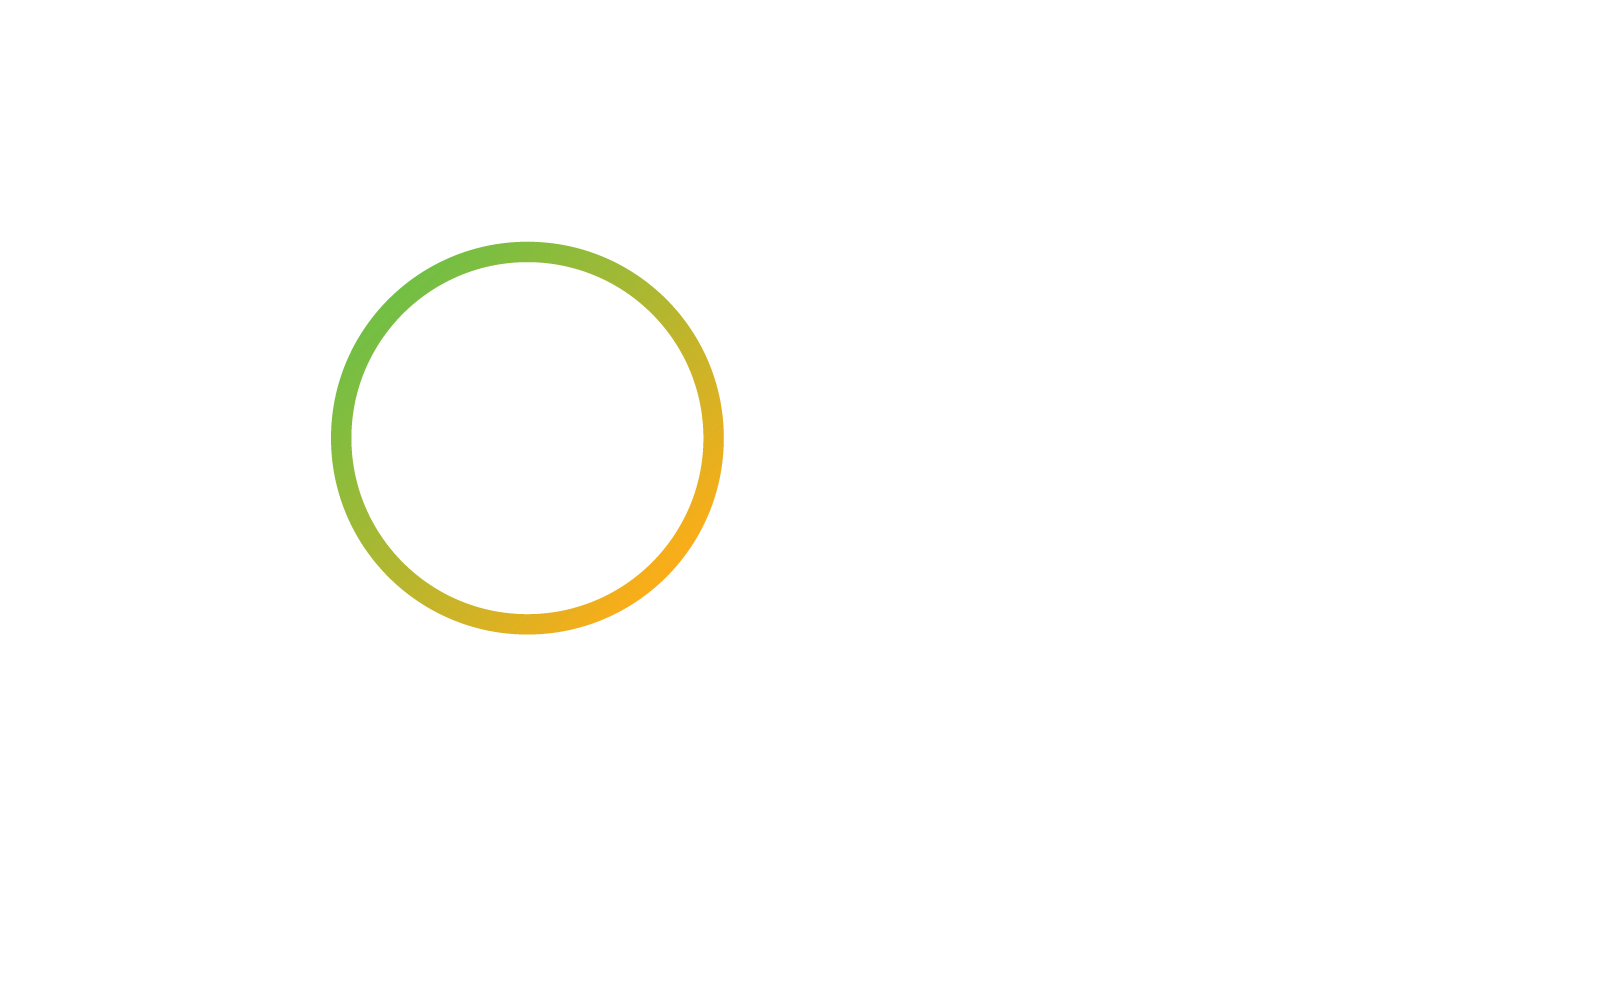 Cover image: Irish Design Shop (2012)